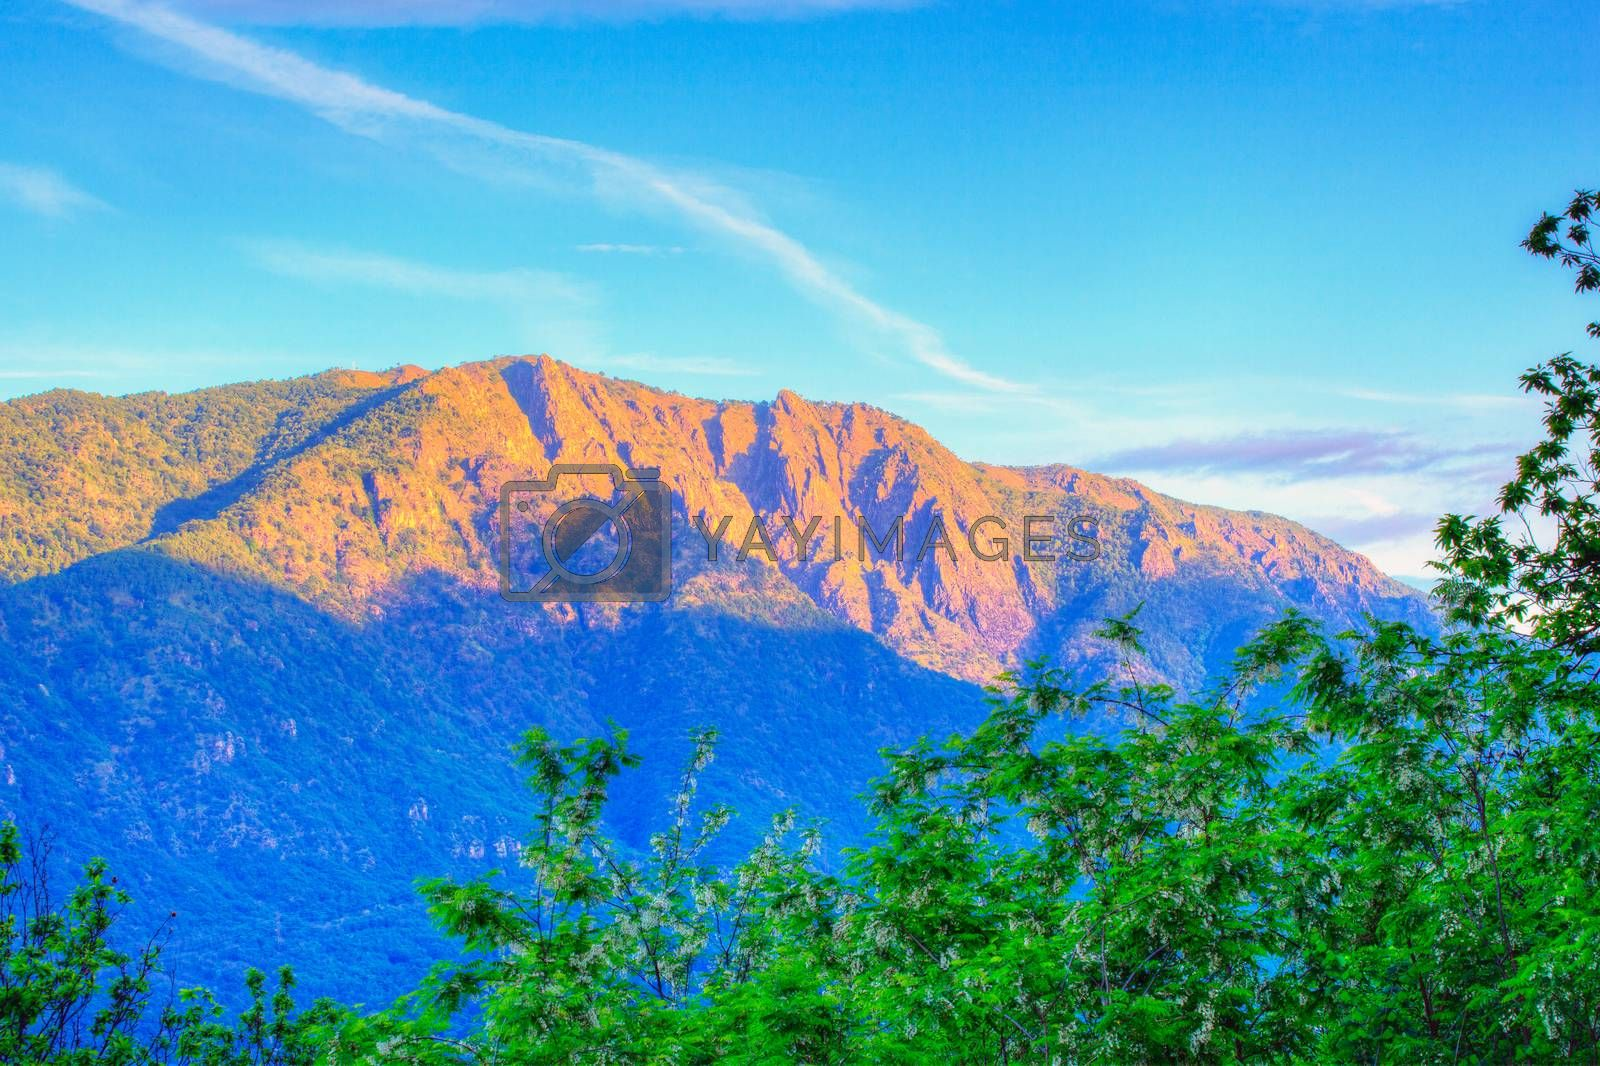 View of the Mottarone mountain in Italy